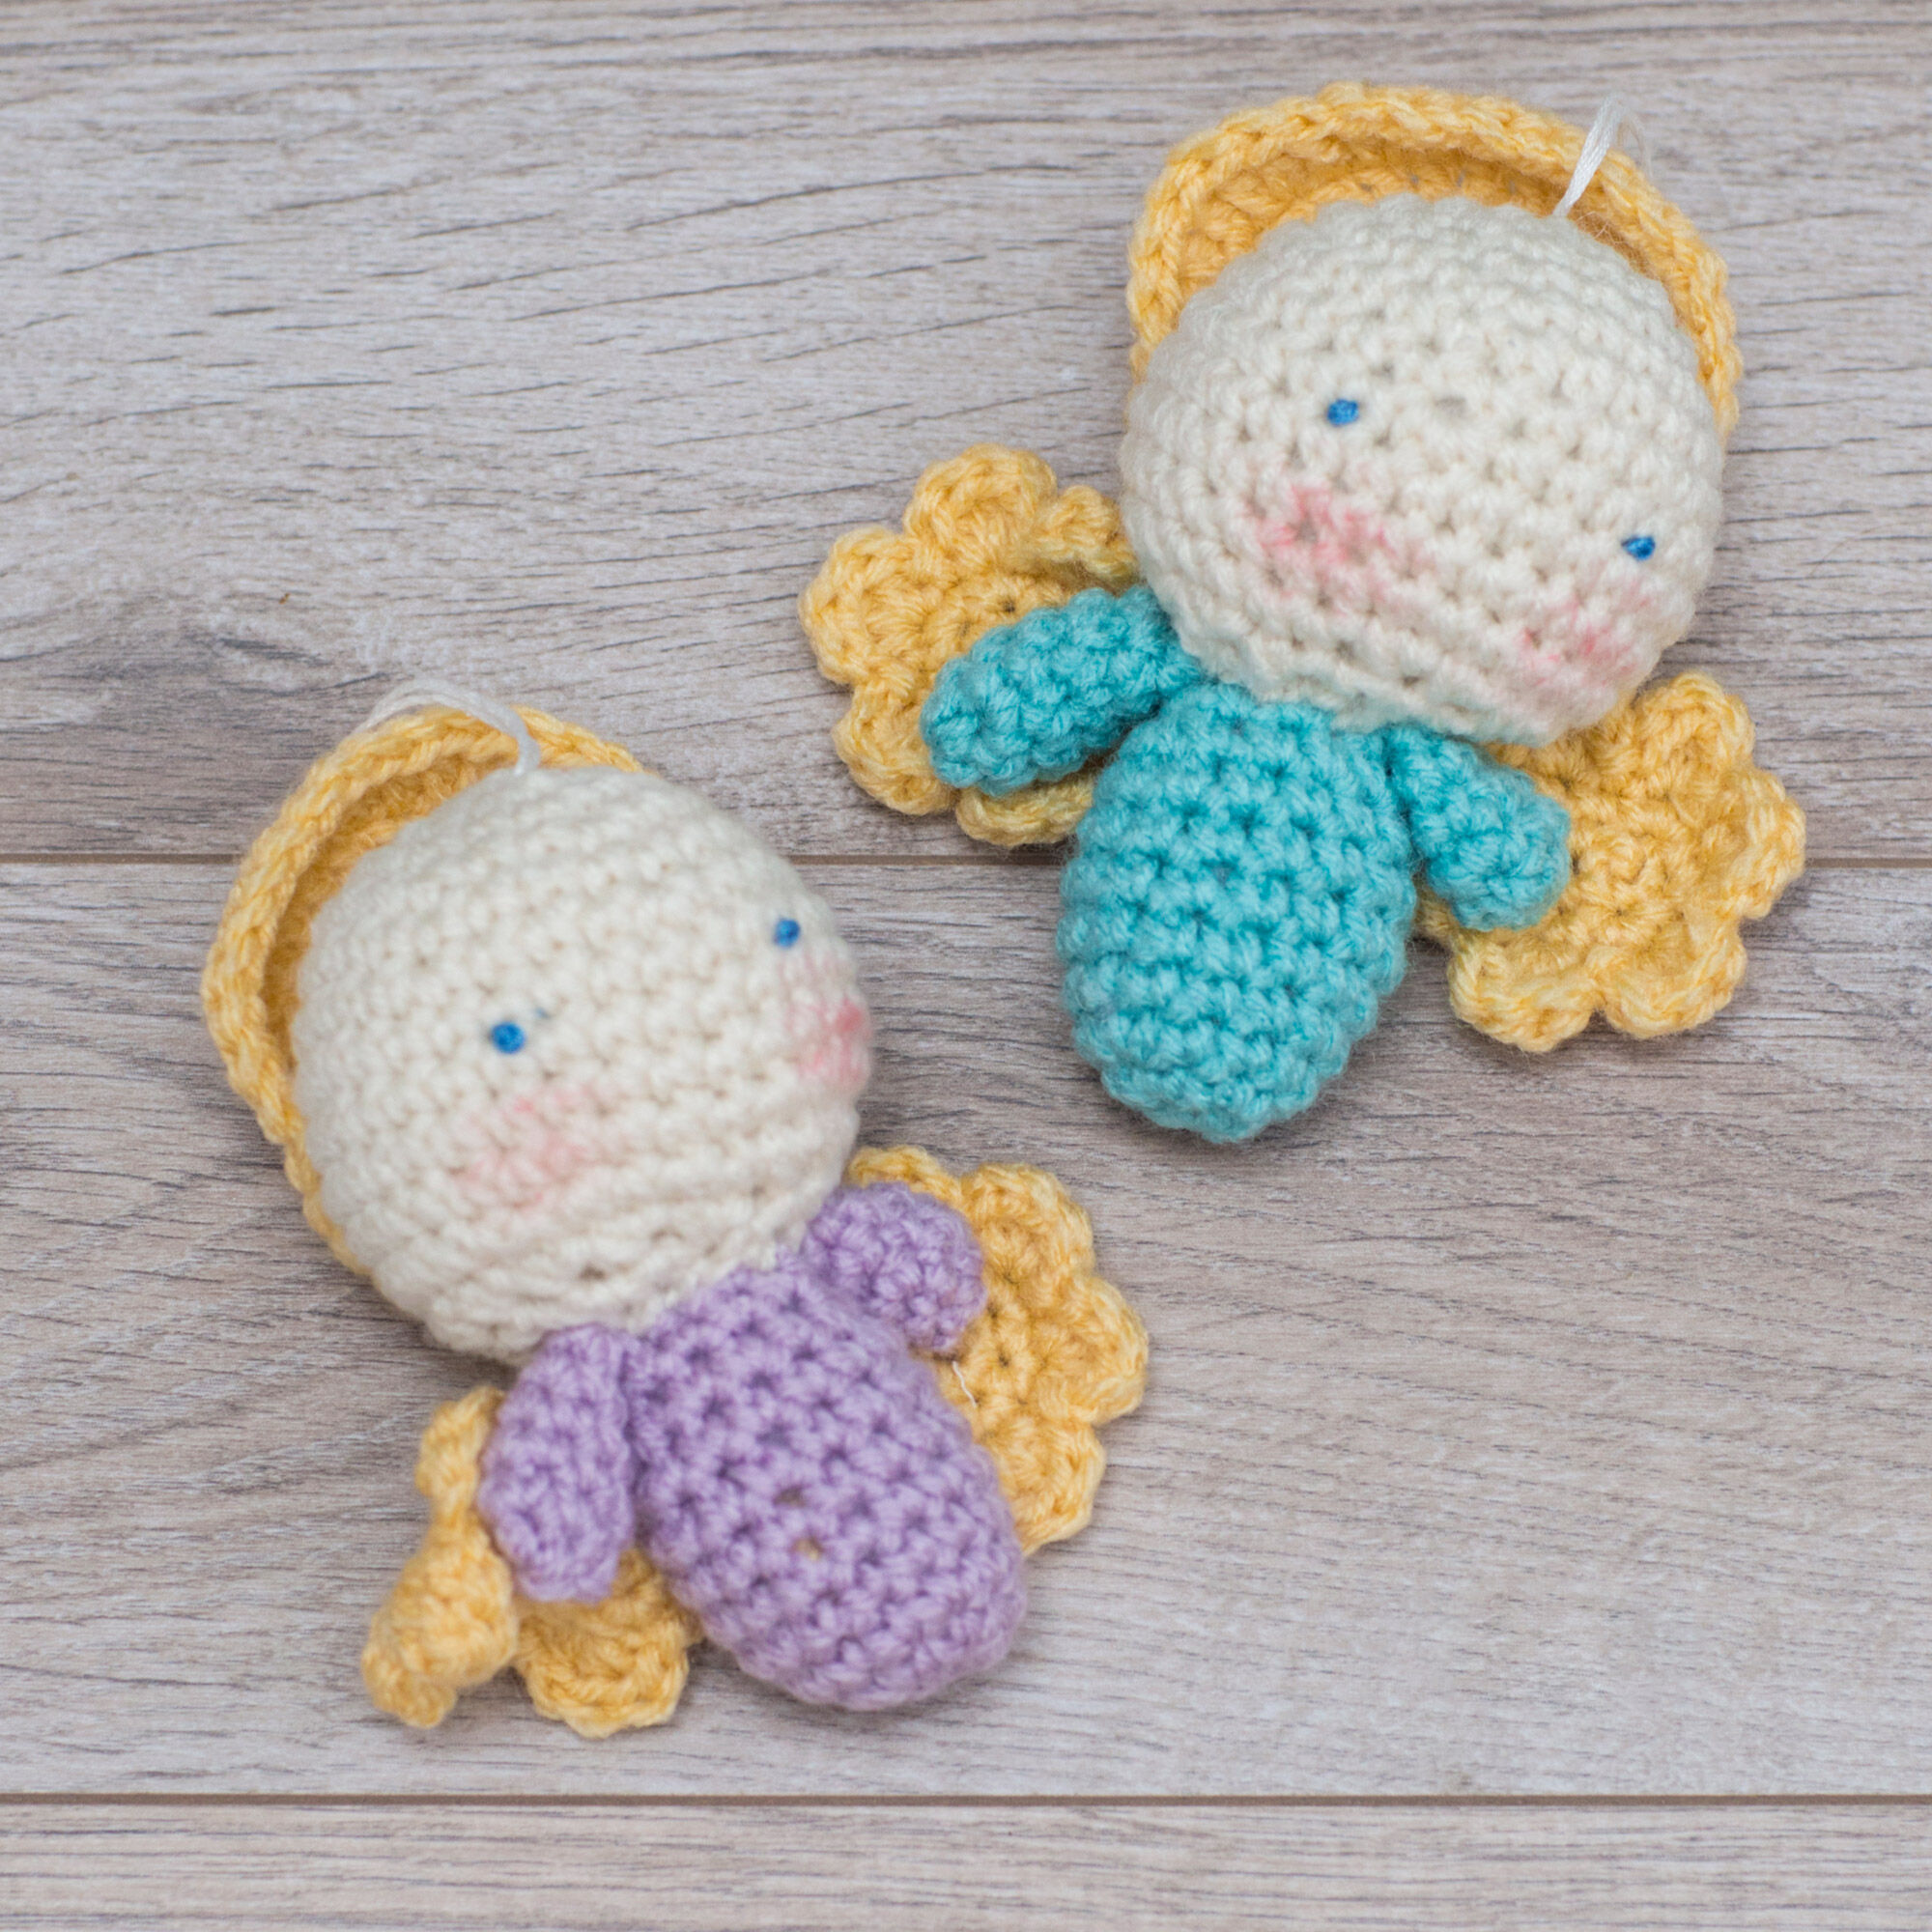 10 Free Crochet Angel Amigurumi Patterns - 99 Crochet | 2000x2000